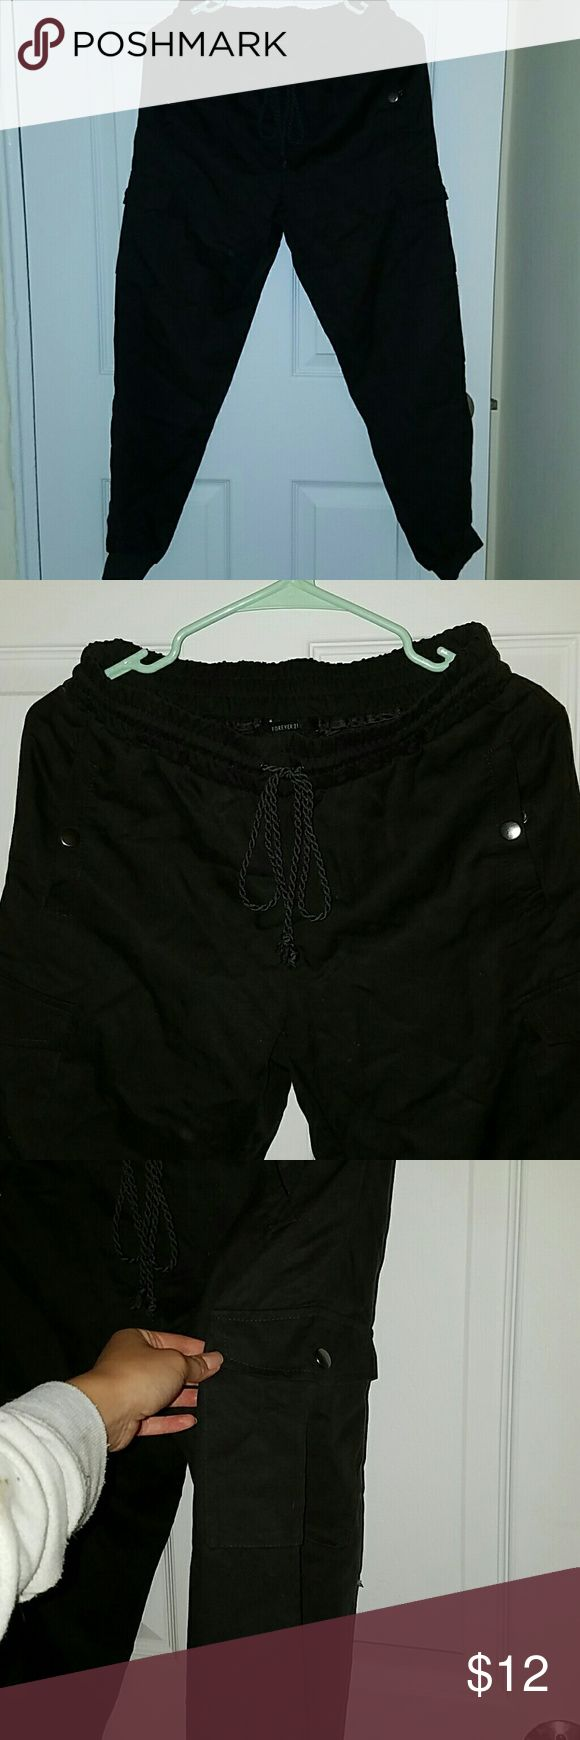 Jogger cargo pants Dark gray/dark brown jogger pants from forever 21. Loose fit, very comfortable material. Cargo pockets on the side. Tie front. Used once. Forever 21 Pants Track Pants & Joggers